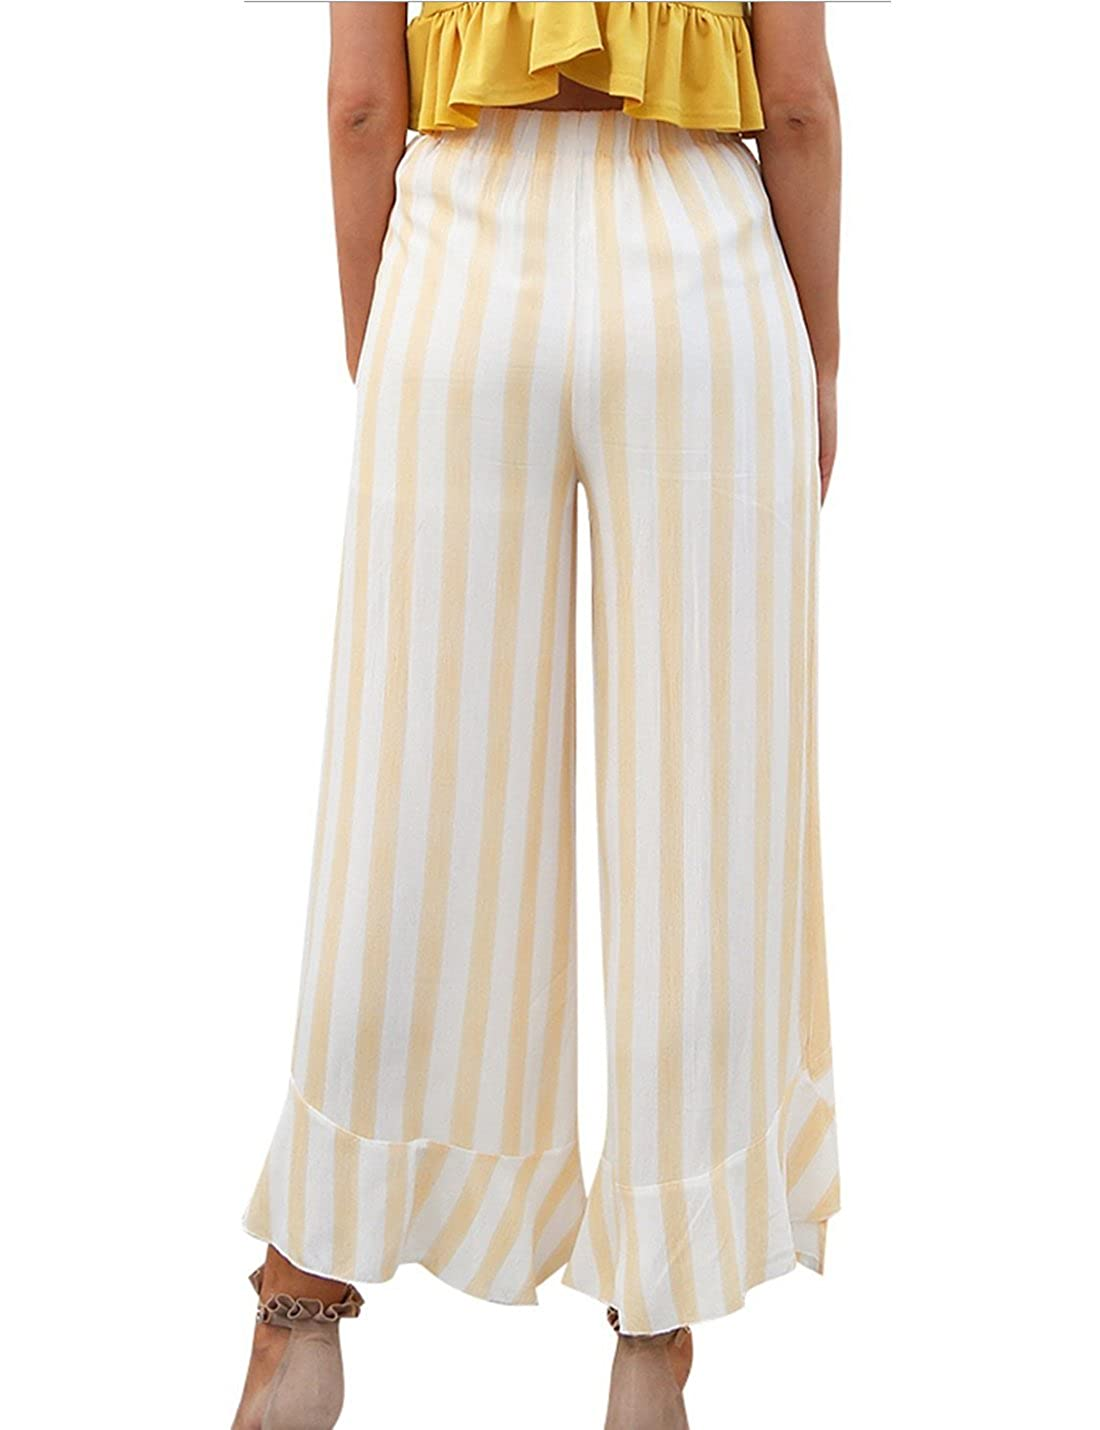 CAIYING Womens Summer Casual Palazzo Pants Striped Loose Wide Leg Pants